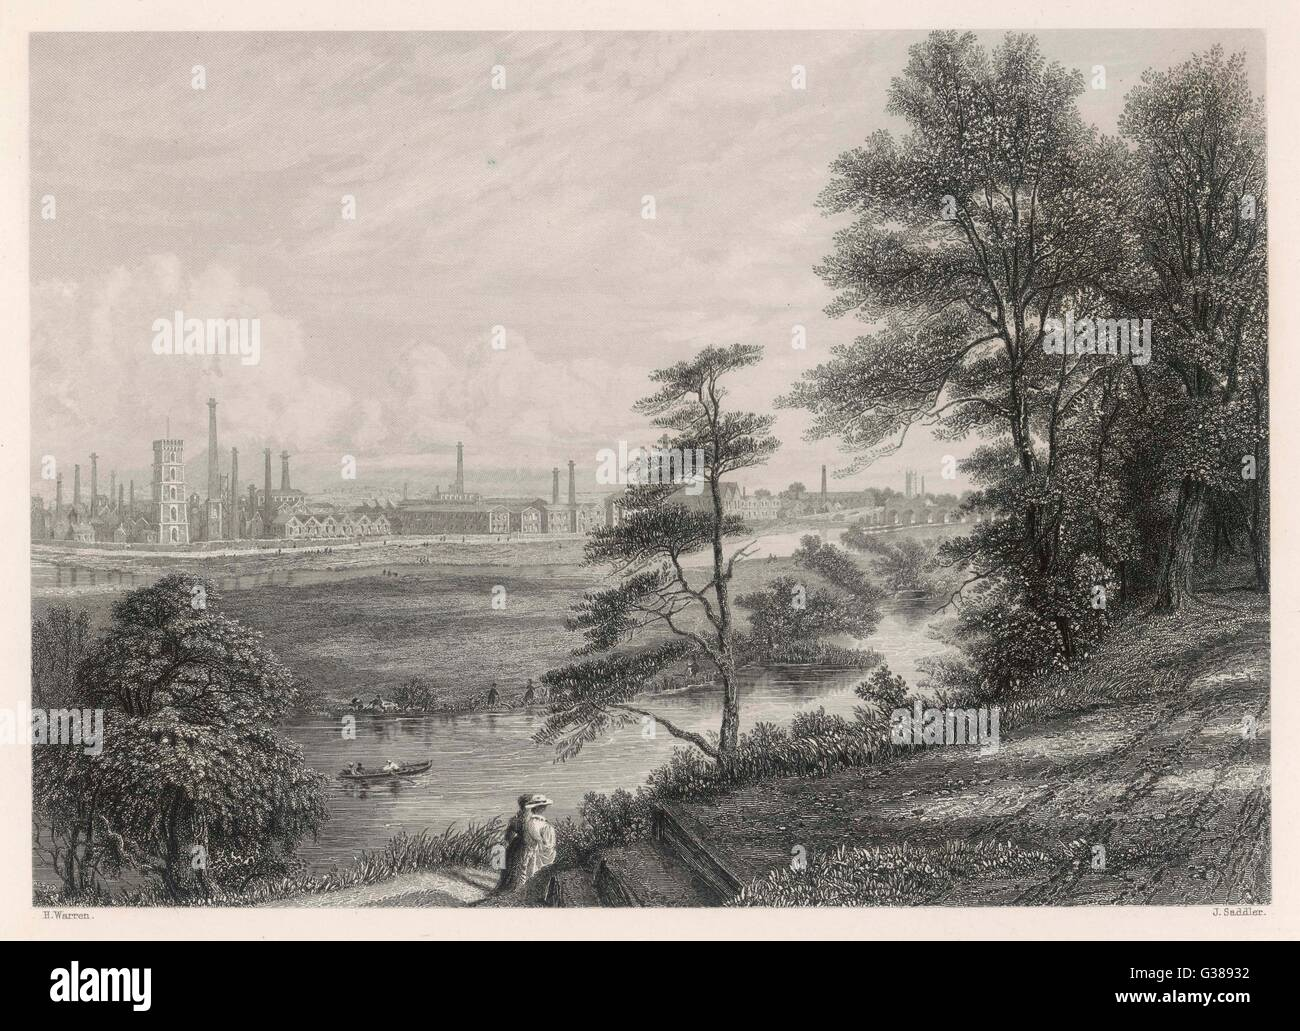 General view of industry in Burton on Trent.         Date: Circa 1840 Stock Photo